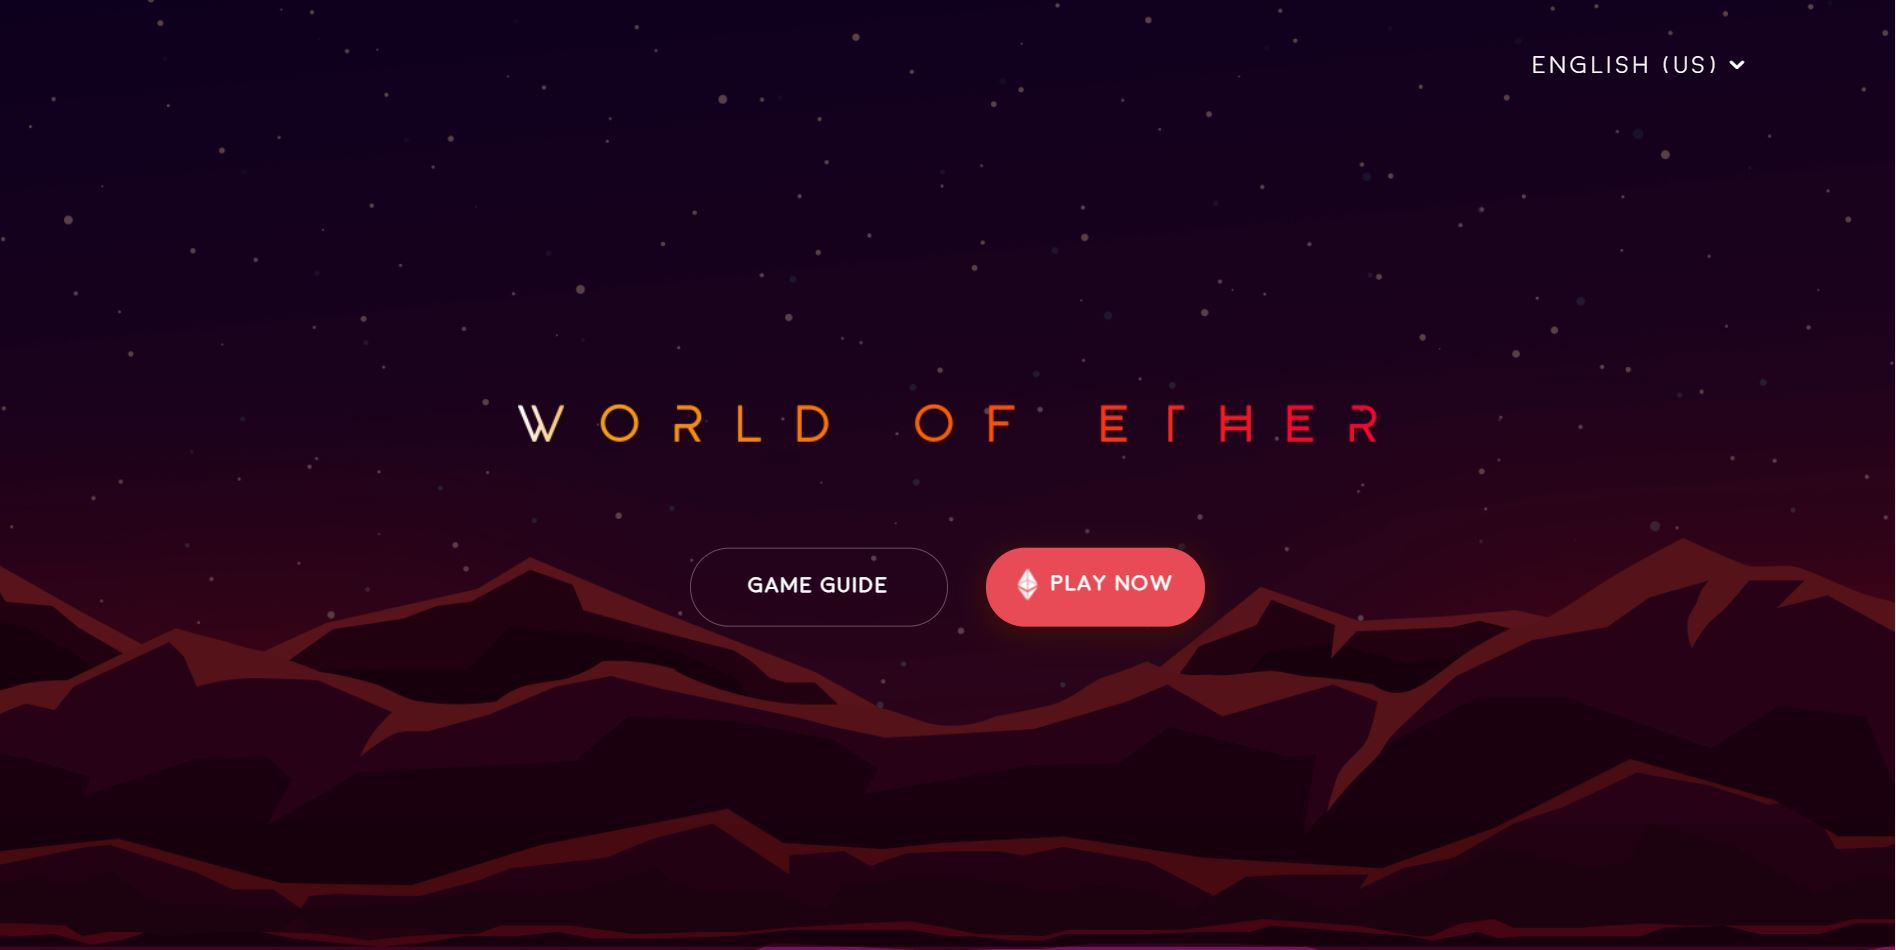 World of Ether Marketplace